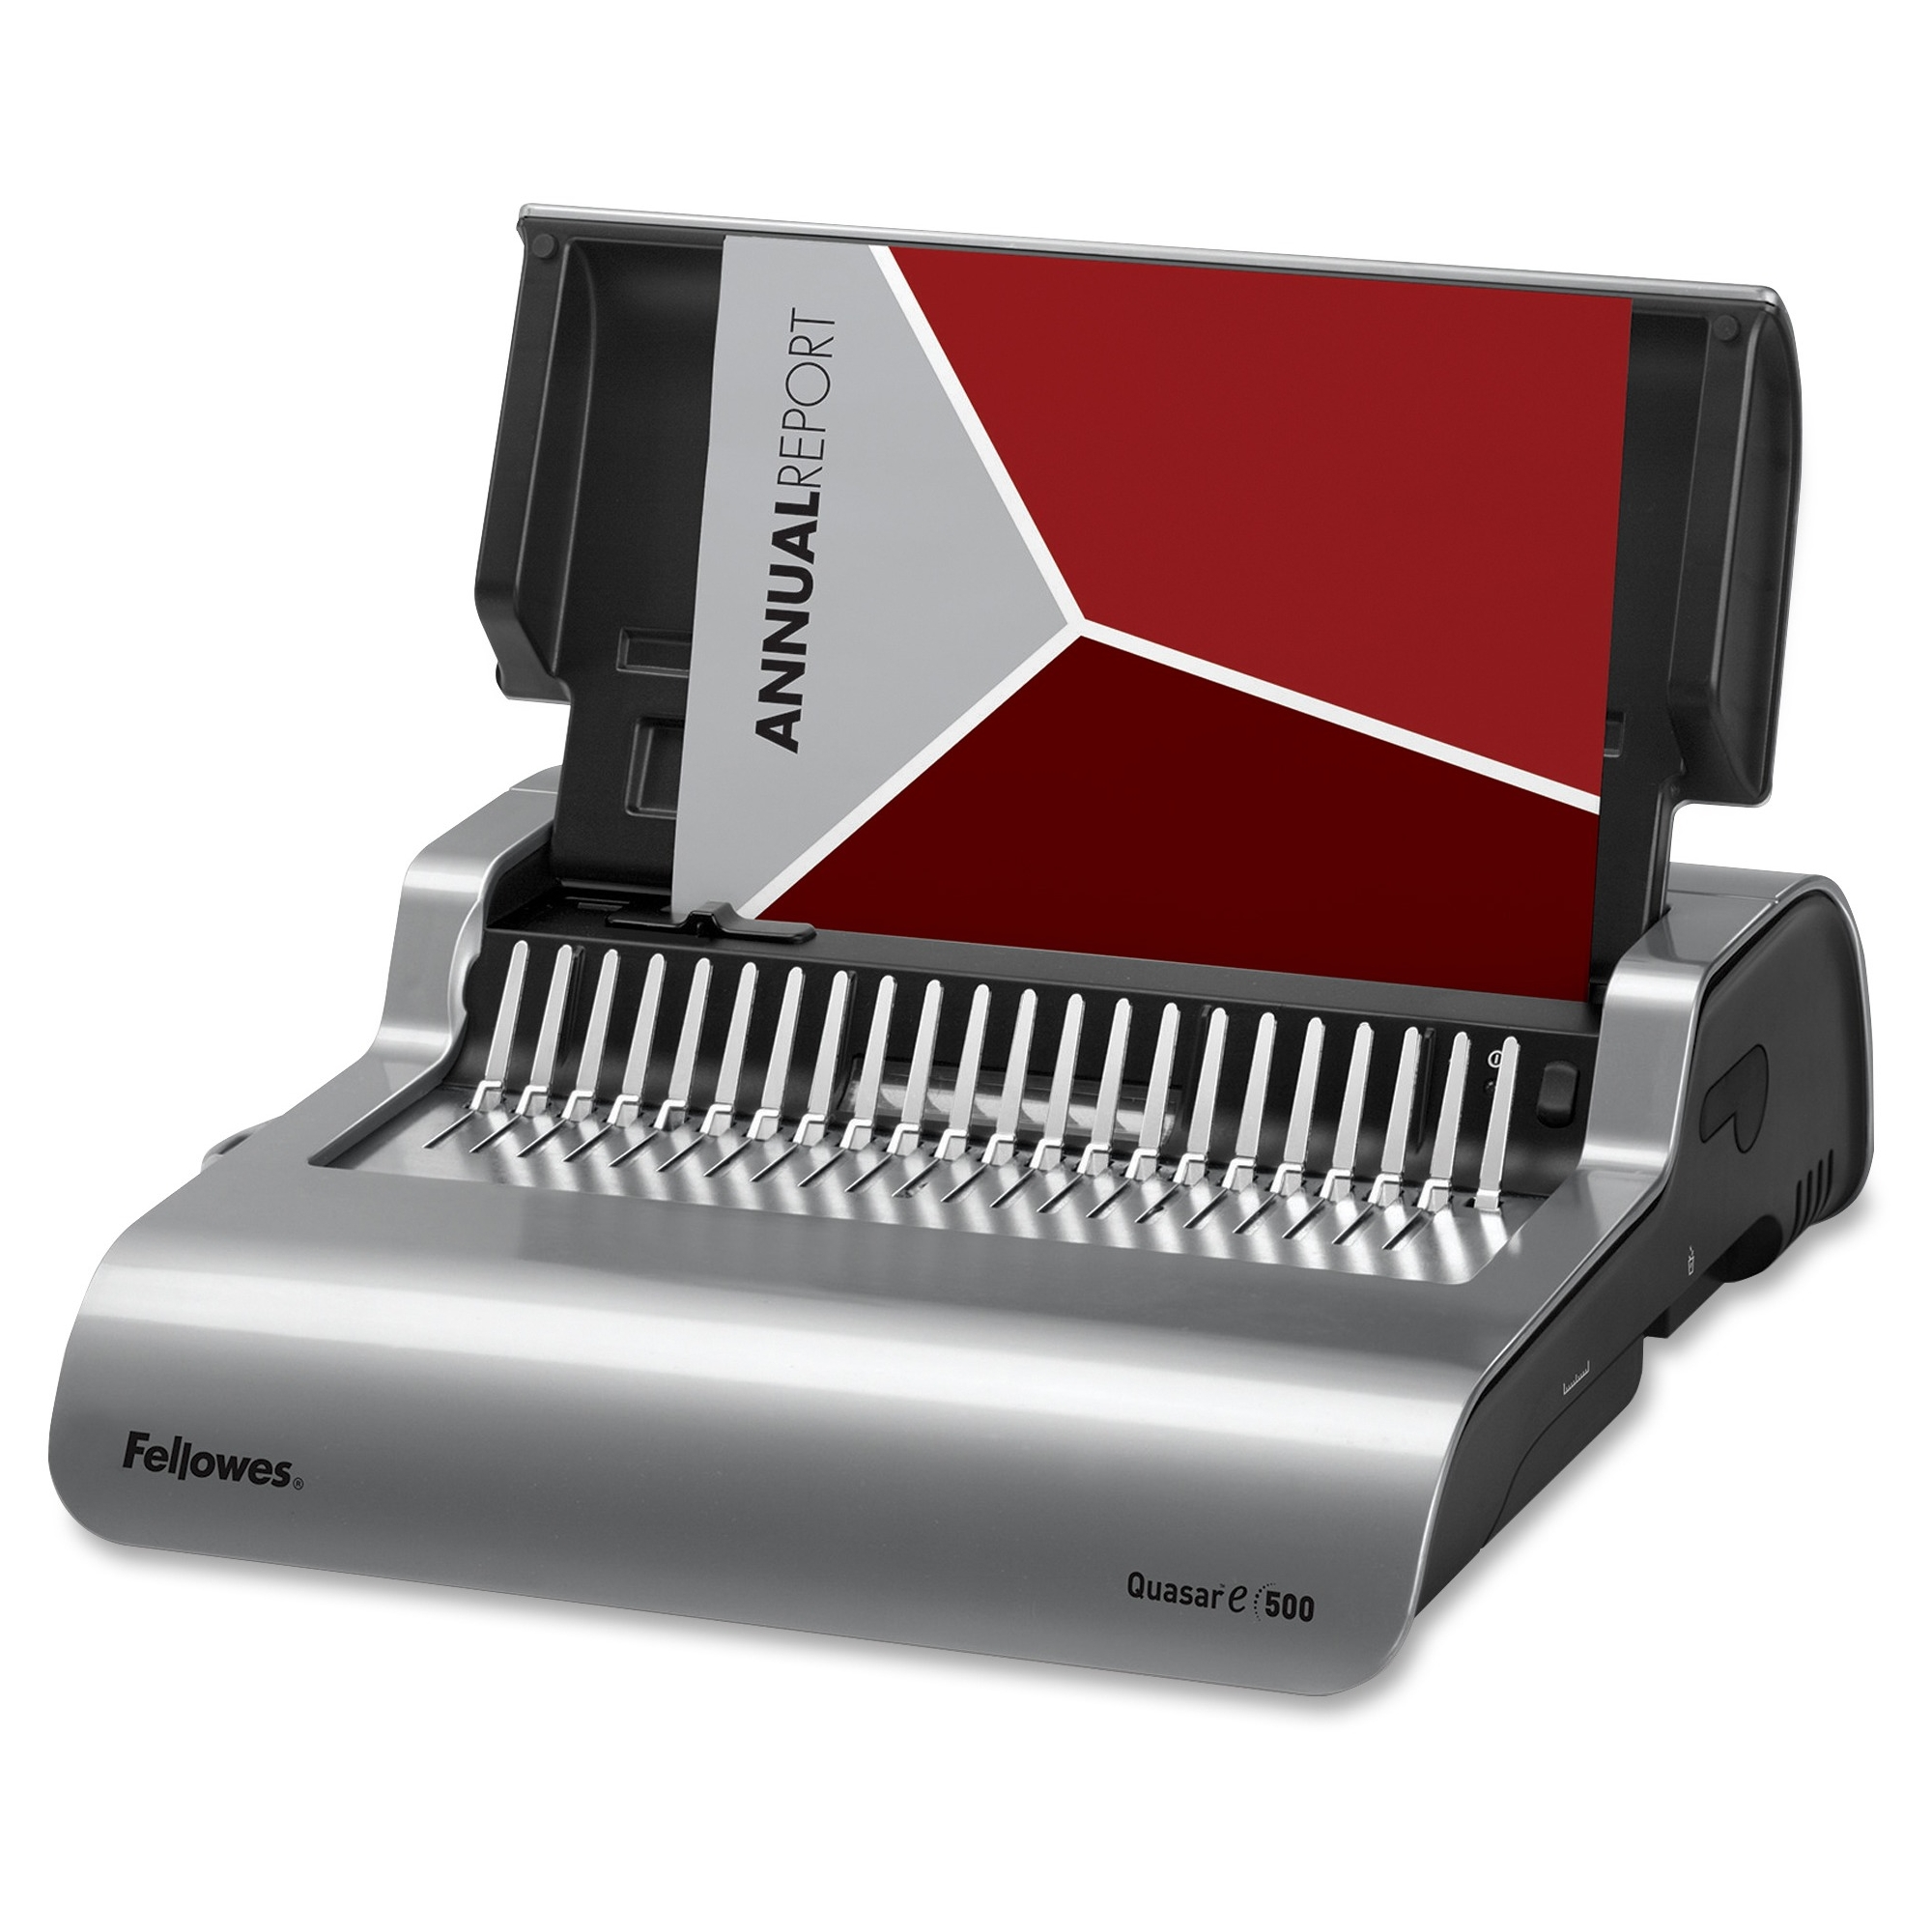 Quasar E 500 Electric Comb Binding Machine - Electrical - CombBind - 500 Sheet(s) Bind - 20 Punch - 5.1 inch x 16.9 inch x 15.4 inch - Gray